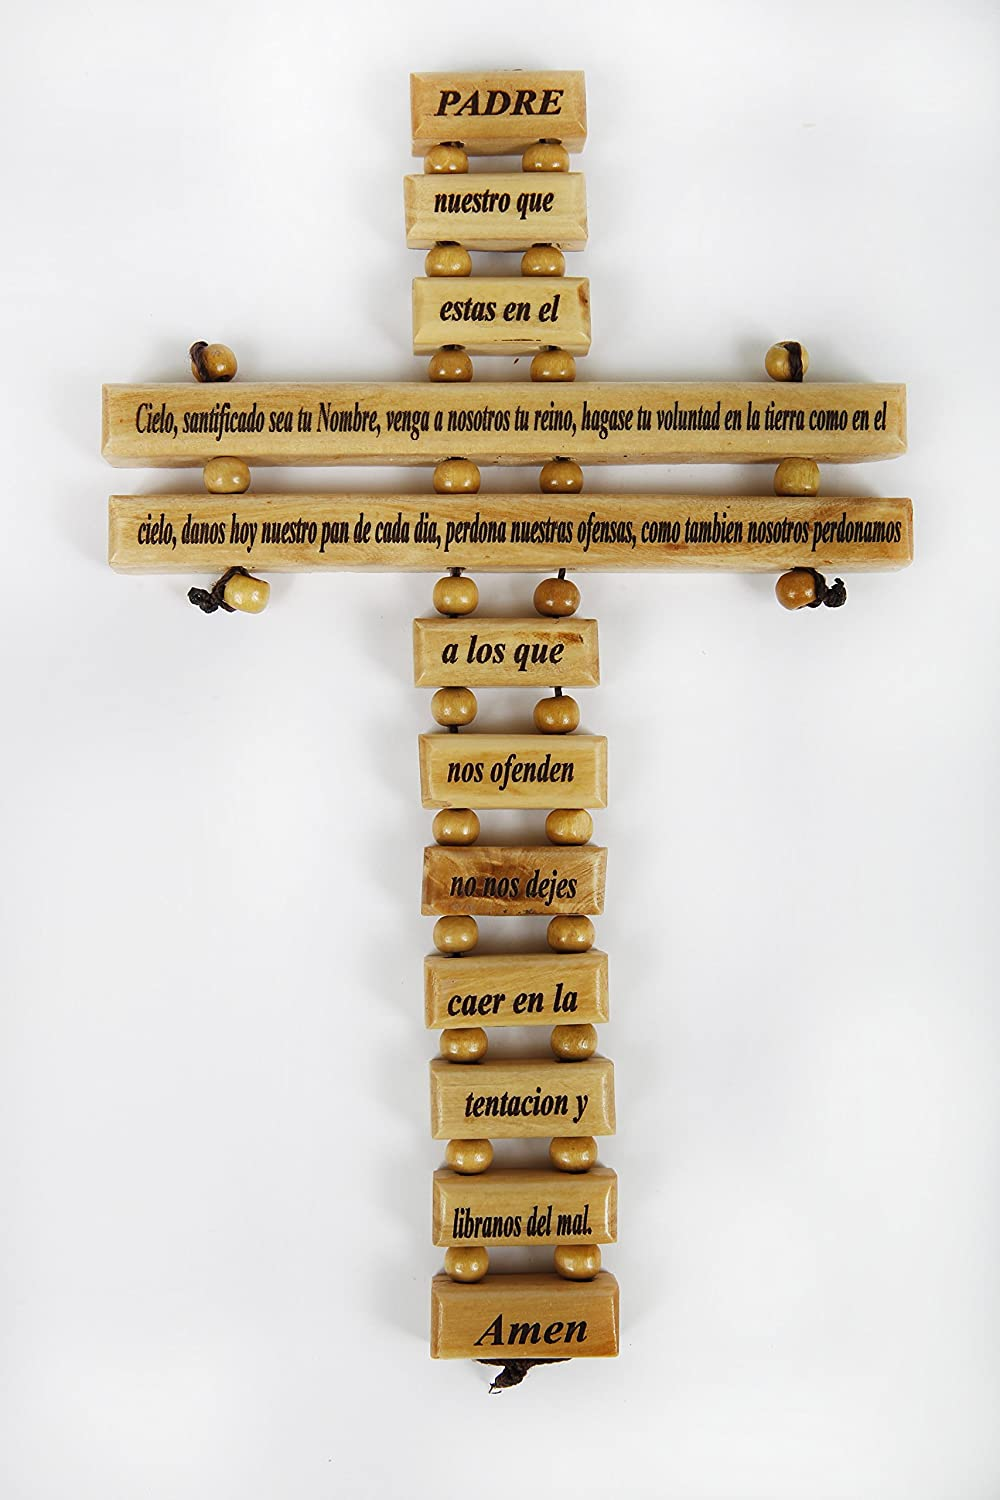 "Olive Wood Crucifix / Wall Cross adorned with the ""Our Father Prayer"" (Spanish Small Version) from Jerusalem Hand Crafted by Artisans in Bethlehem (the heart of the holy land). An Ideal Religious Gift for Christmas or any other Christian Holiday."